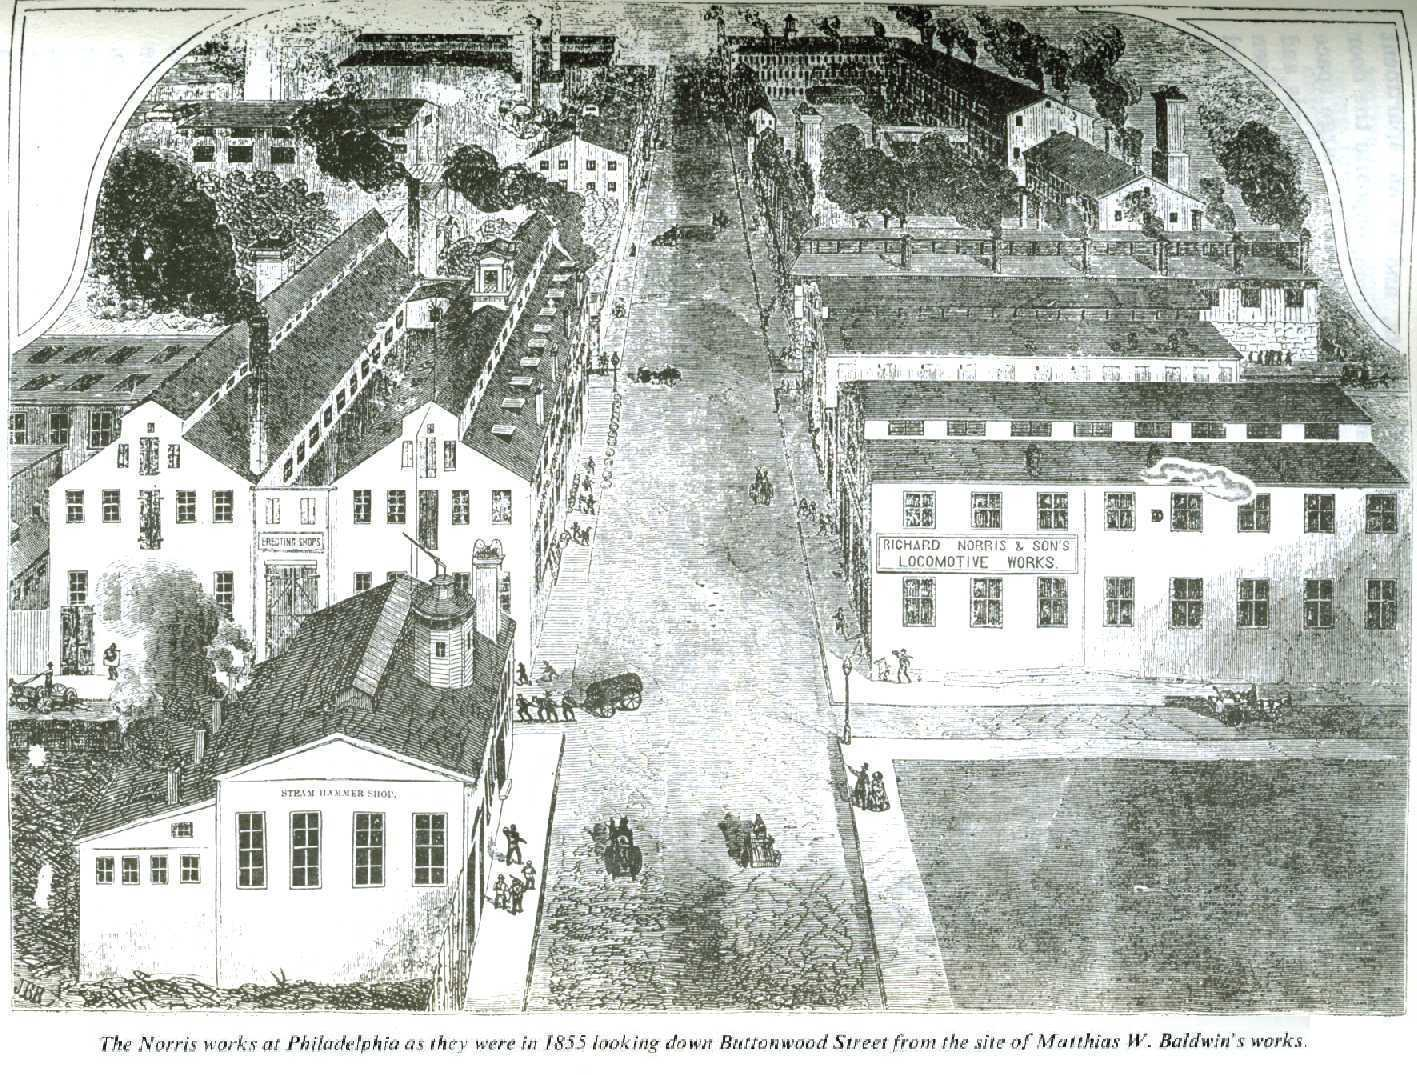 The Norris factory complex in 1855, looking west on Buttonwood Street.